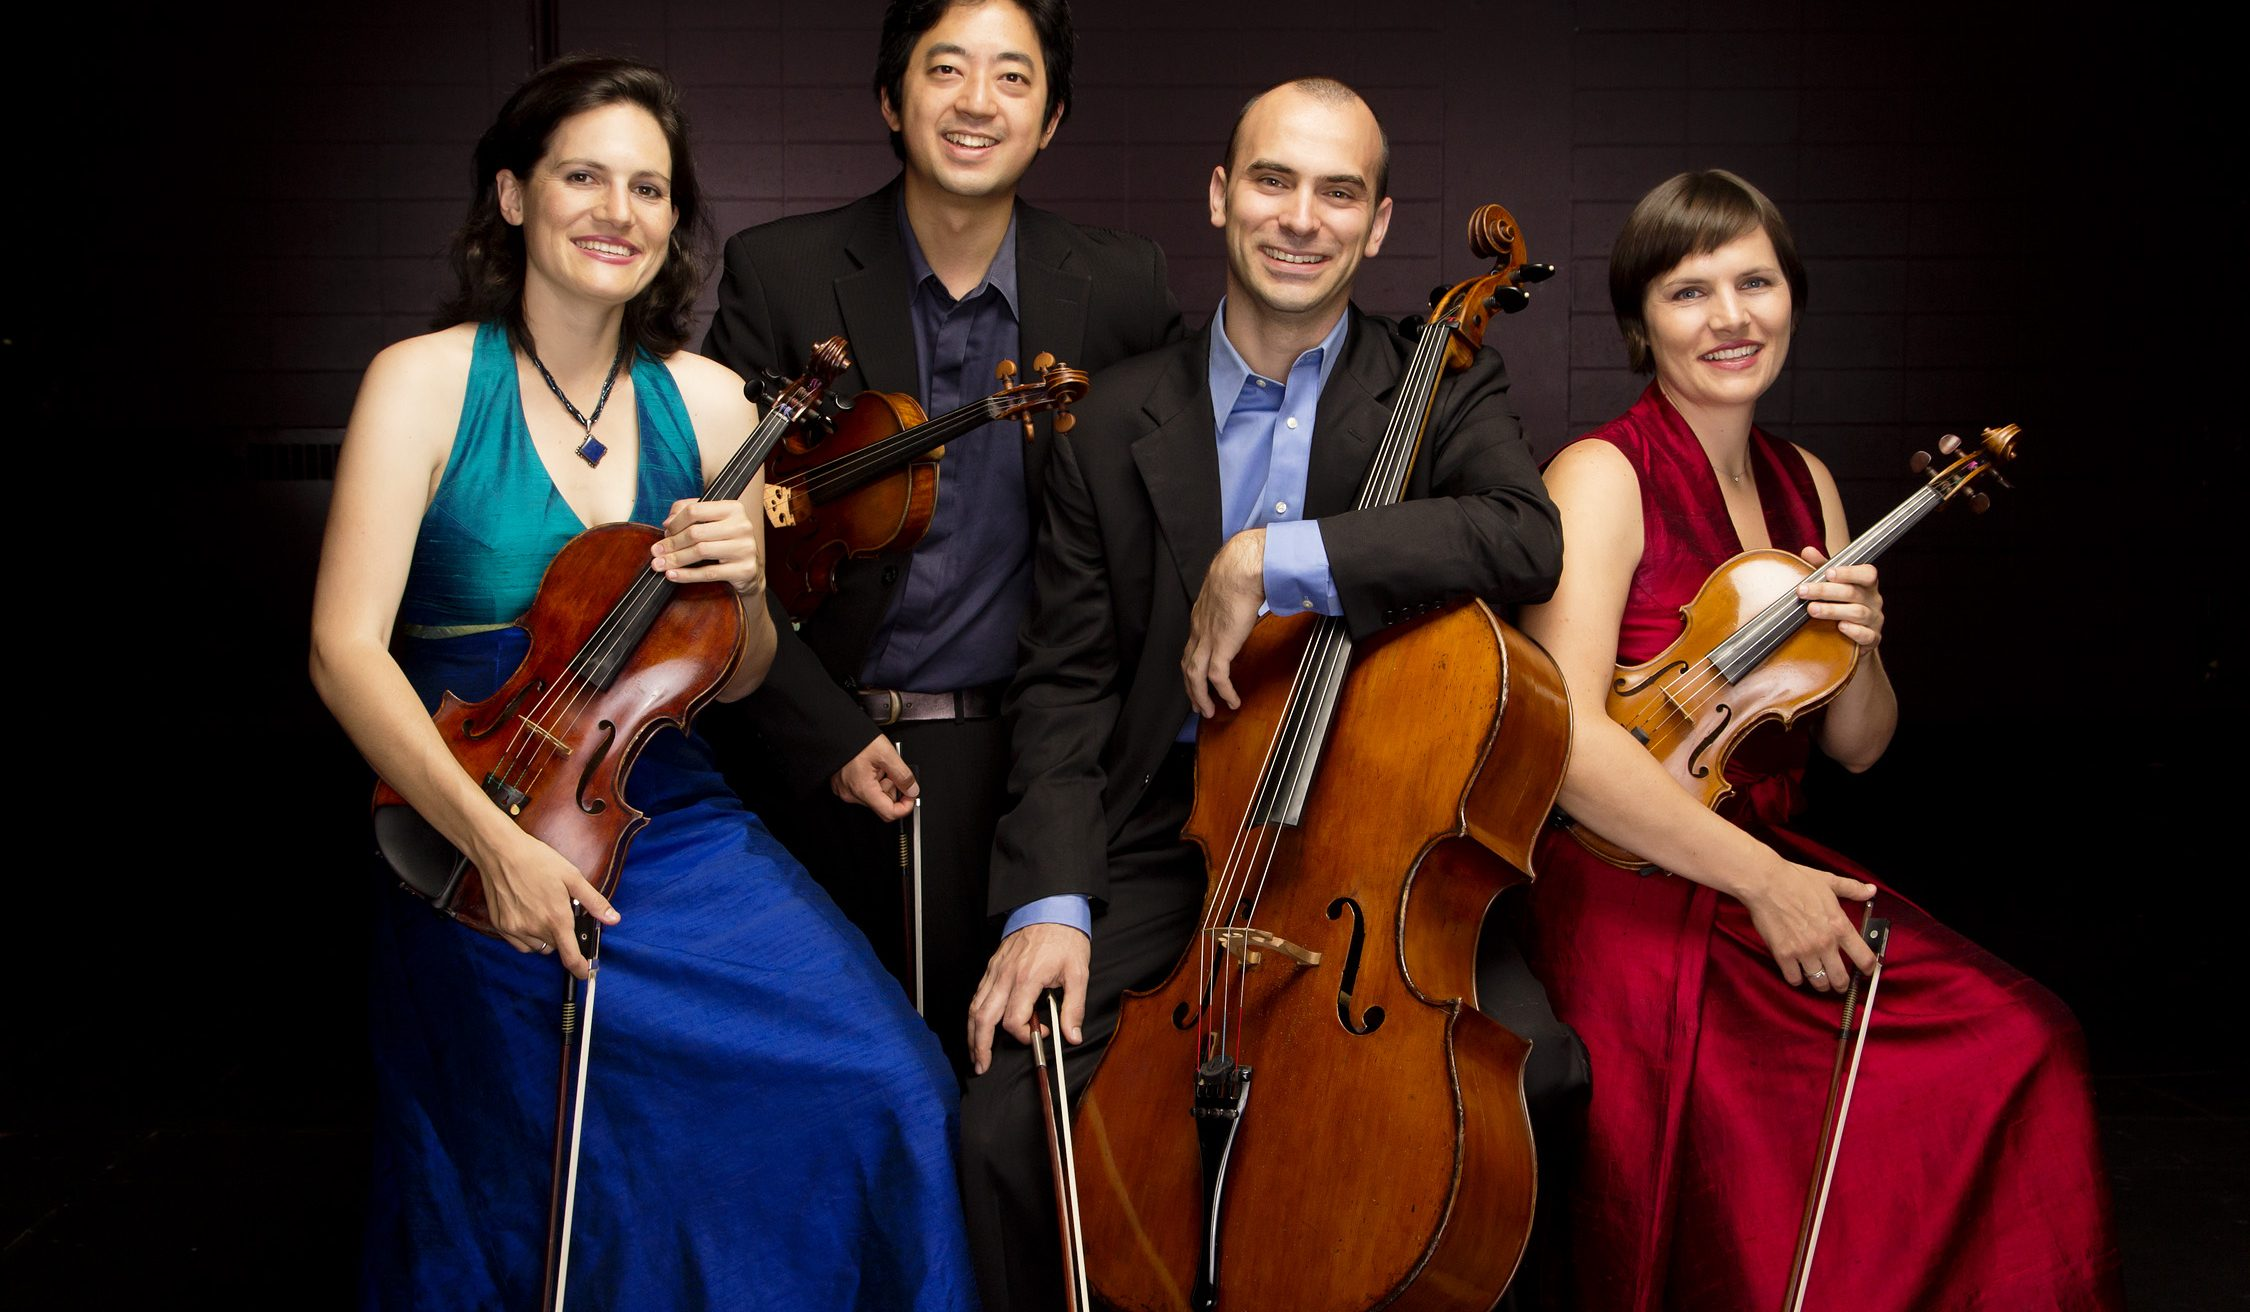 Festival Mondays featuring the Jupiter String Quartet